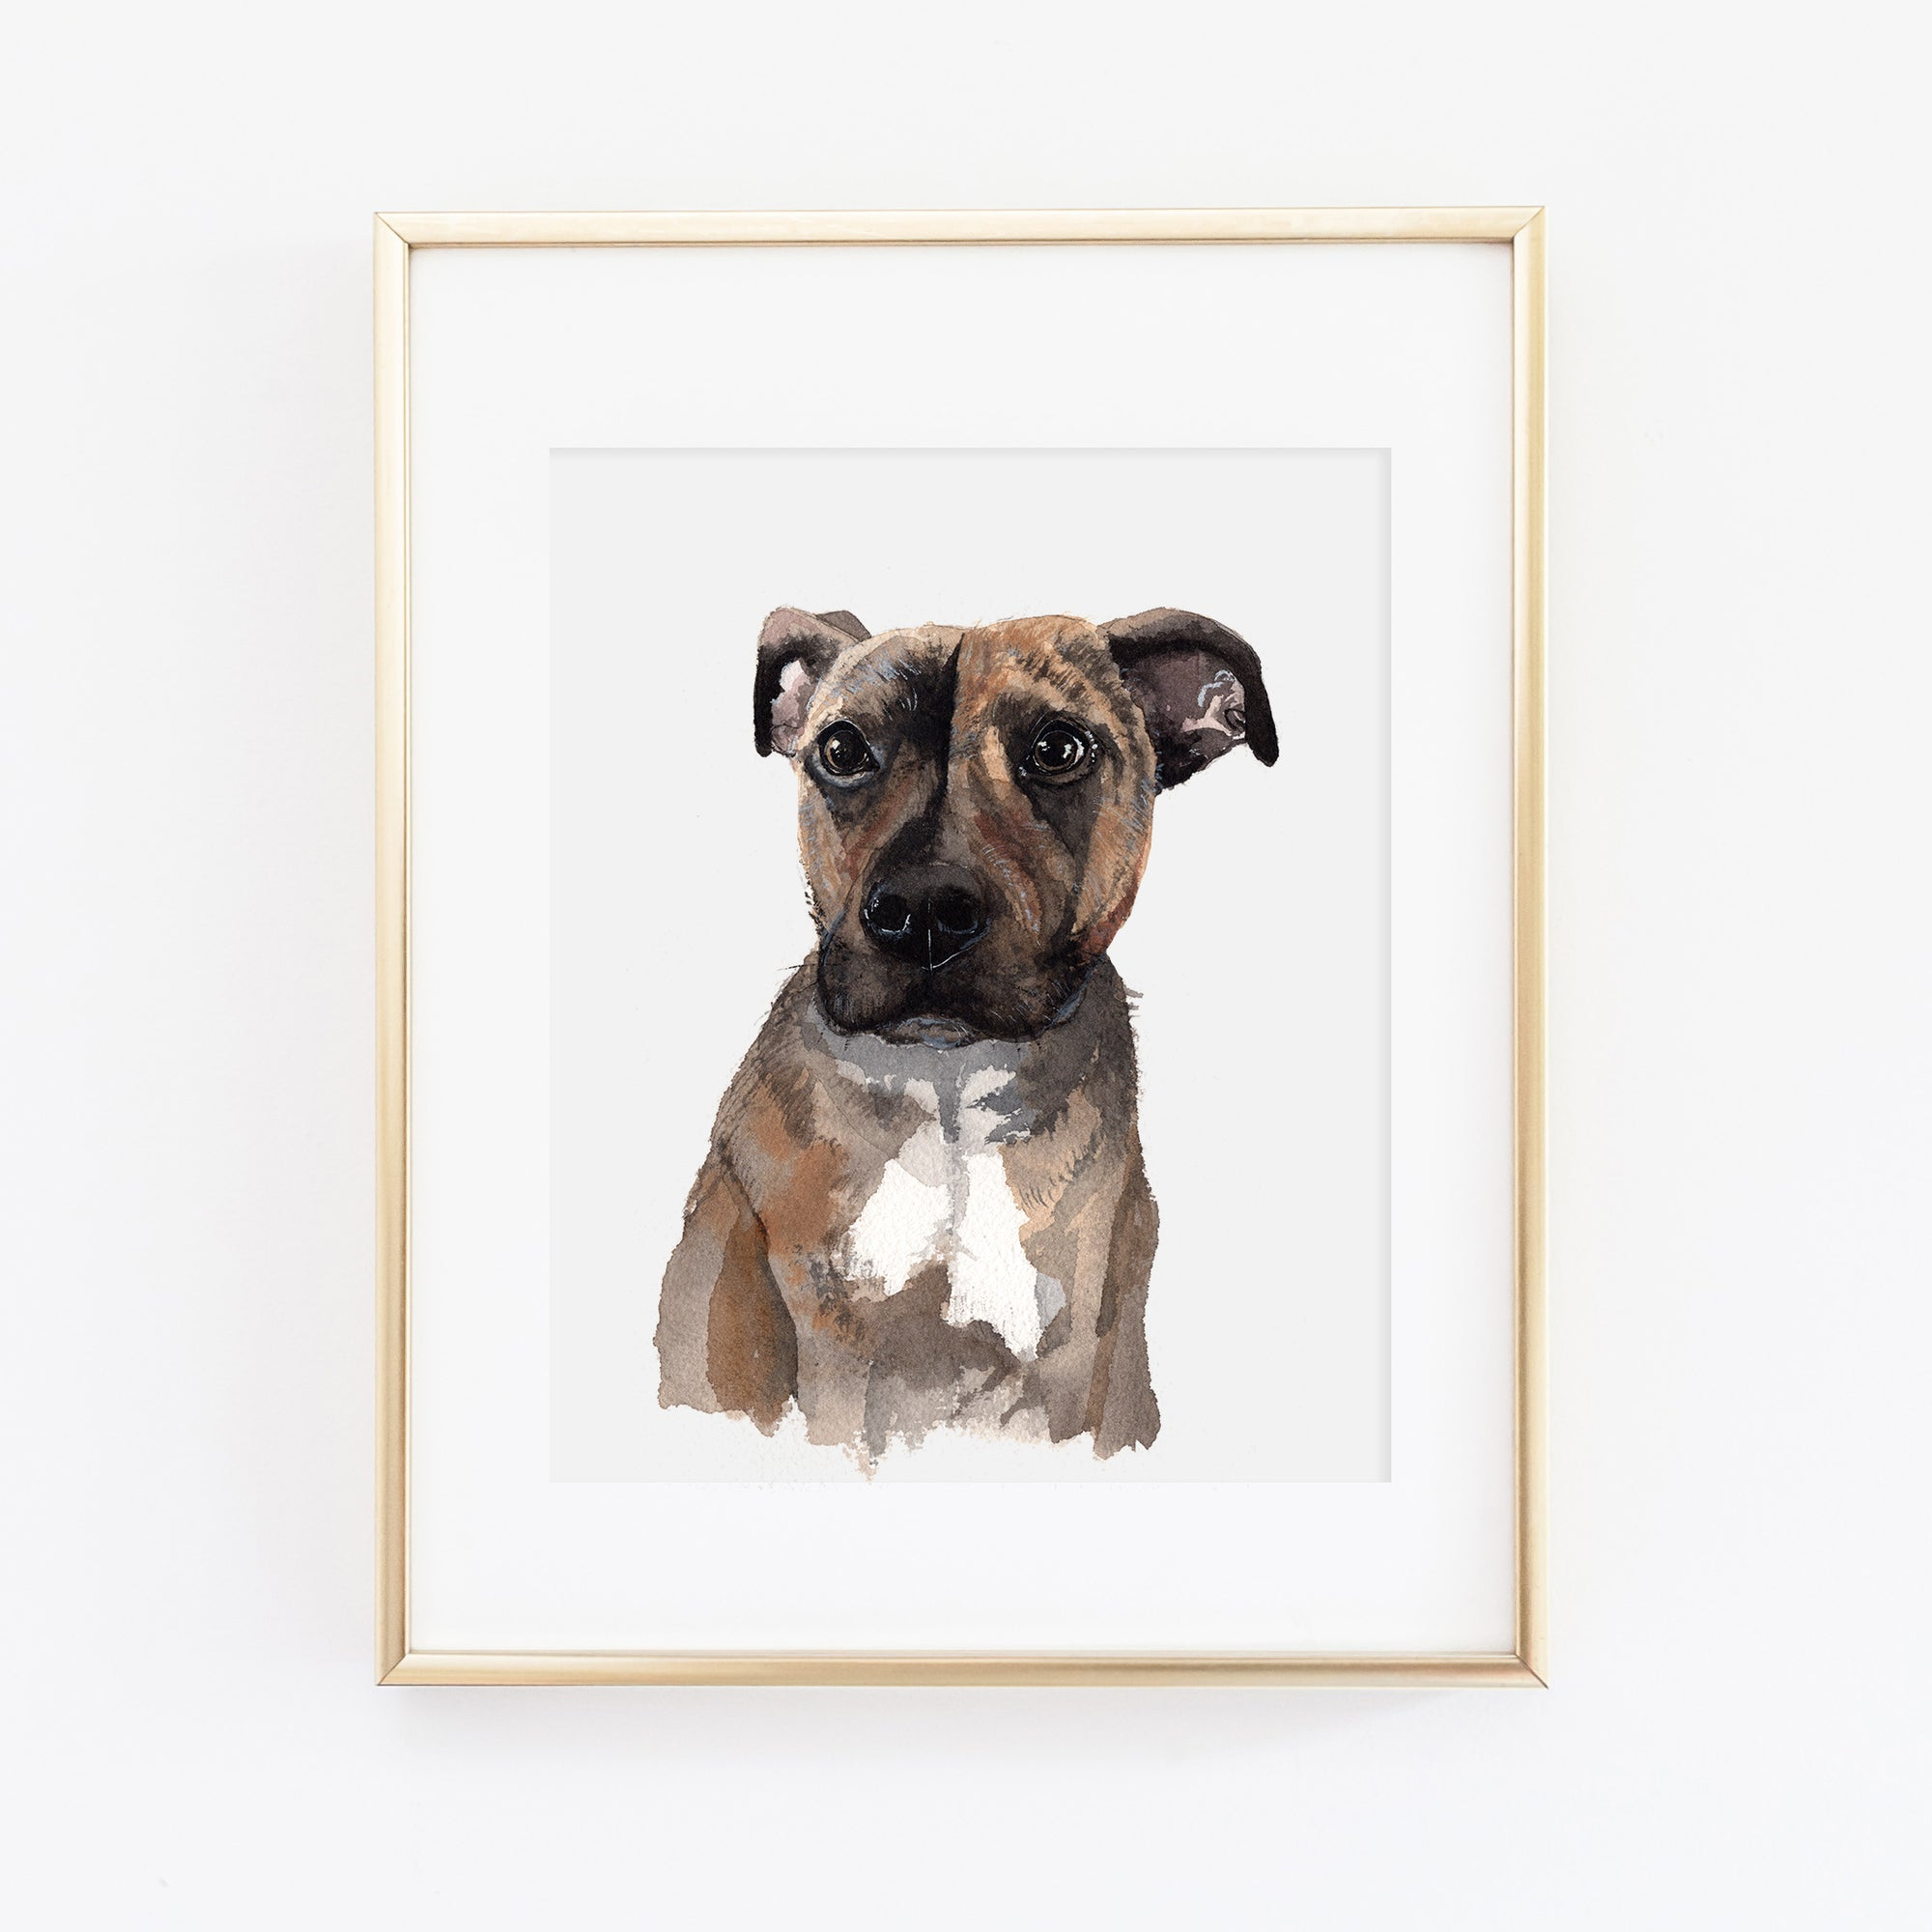 Pitbull Dog Art Print - Luna